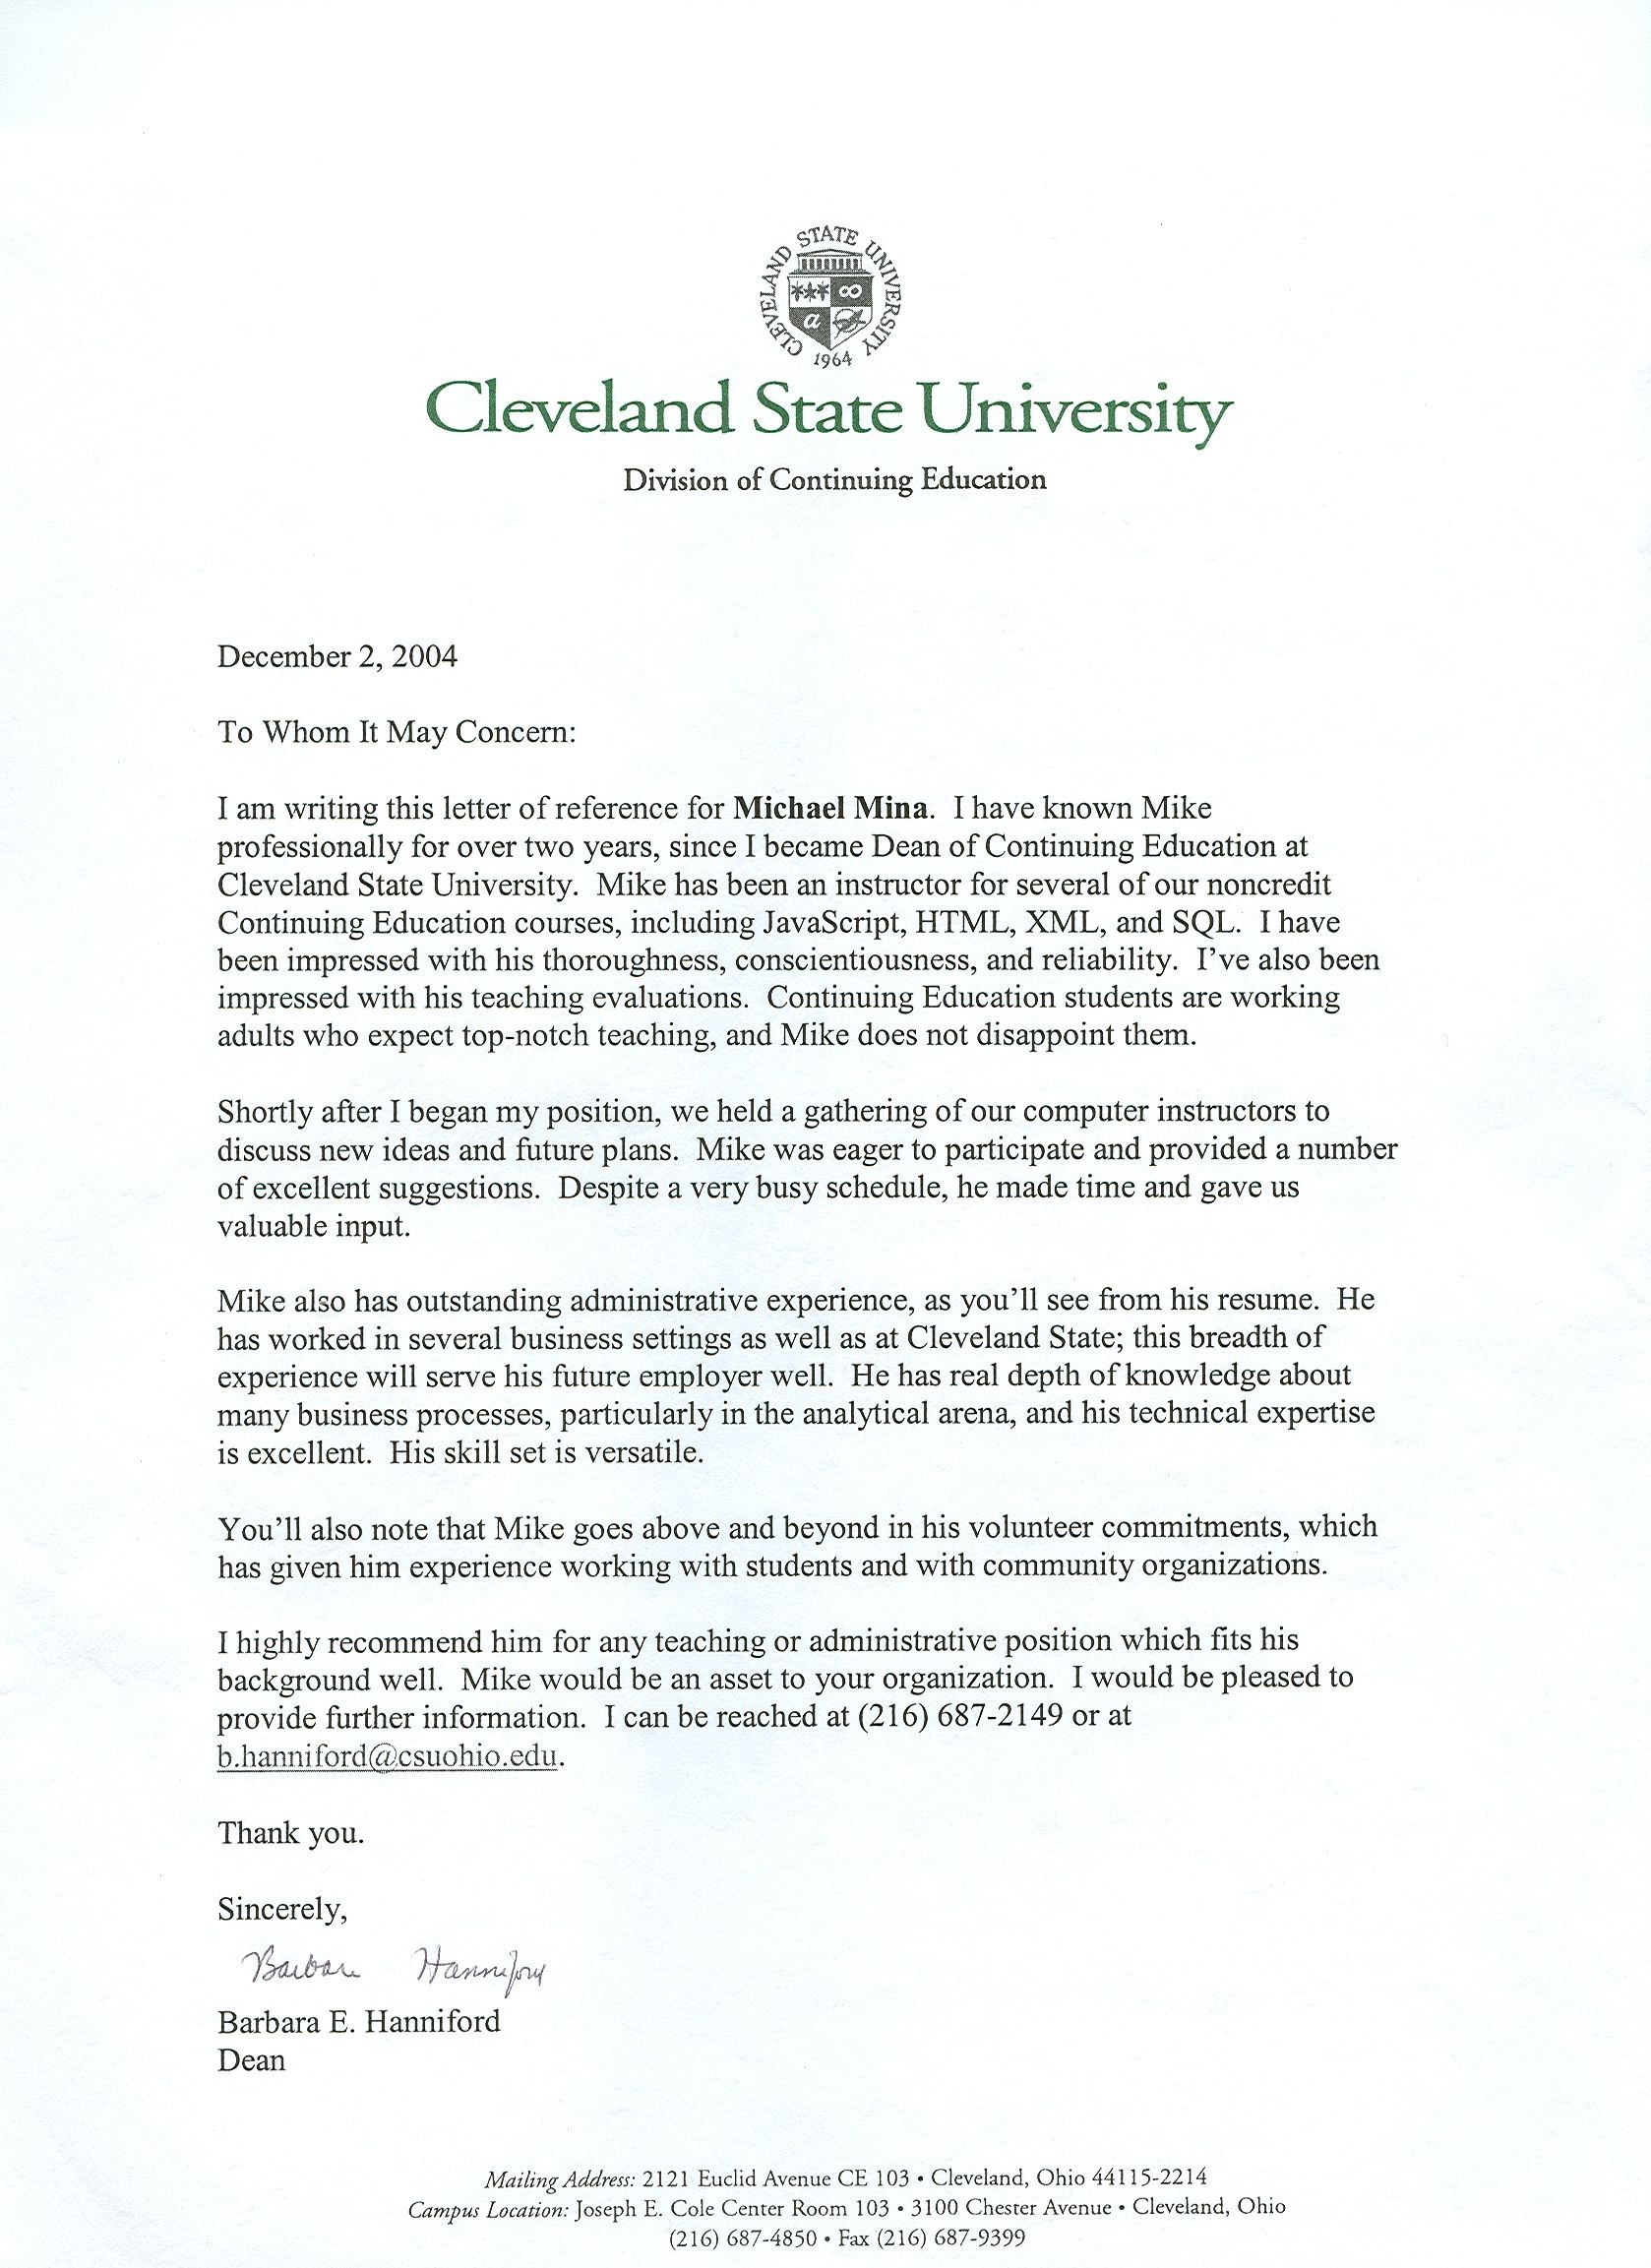 Recommendation Letter For Assistant Professor Position